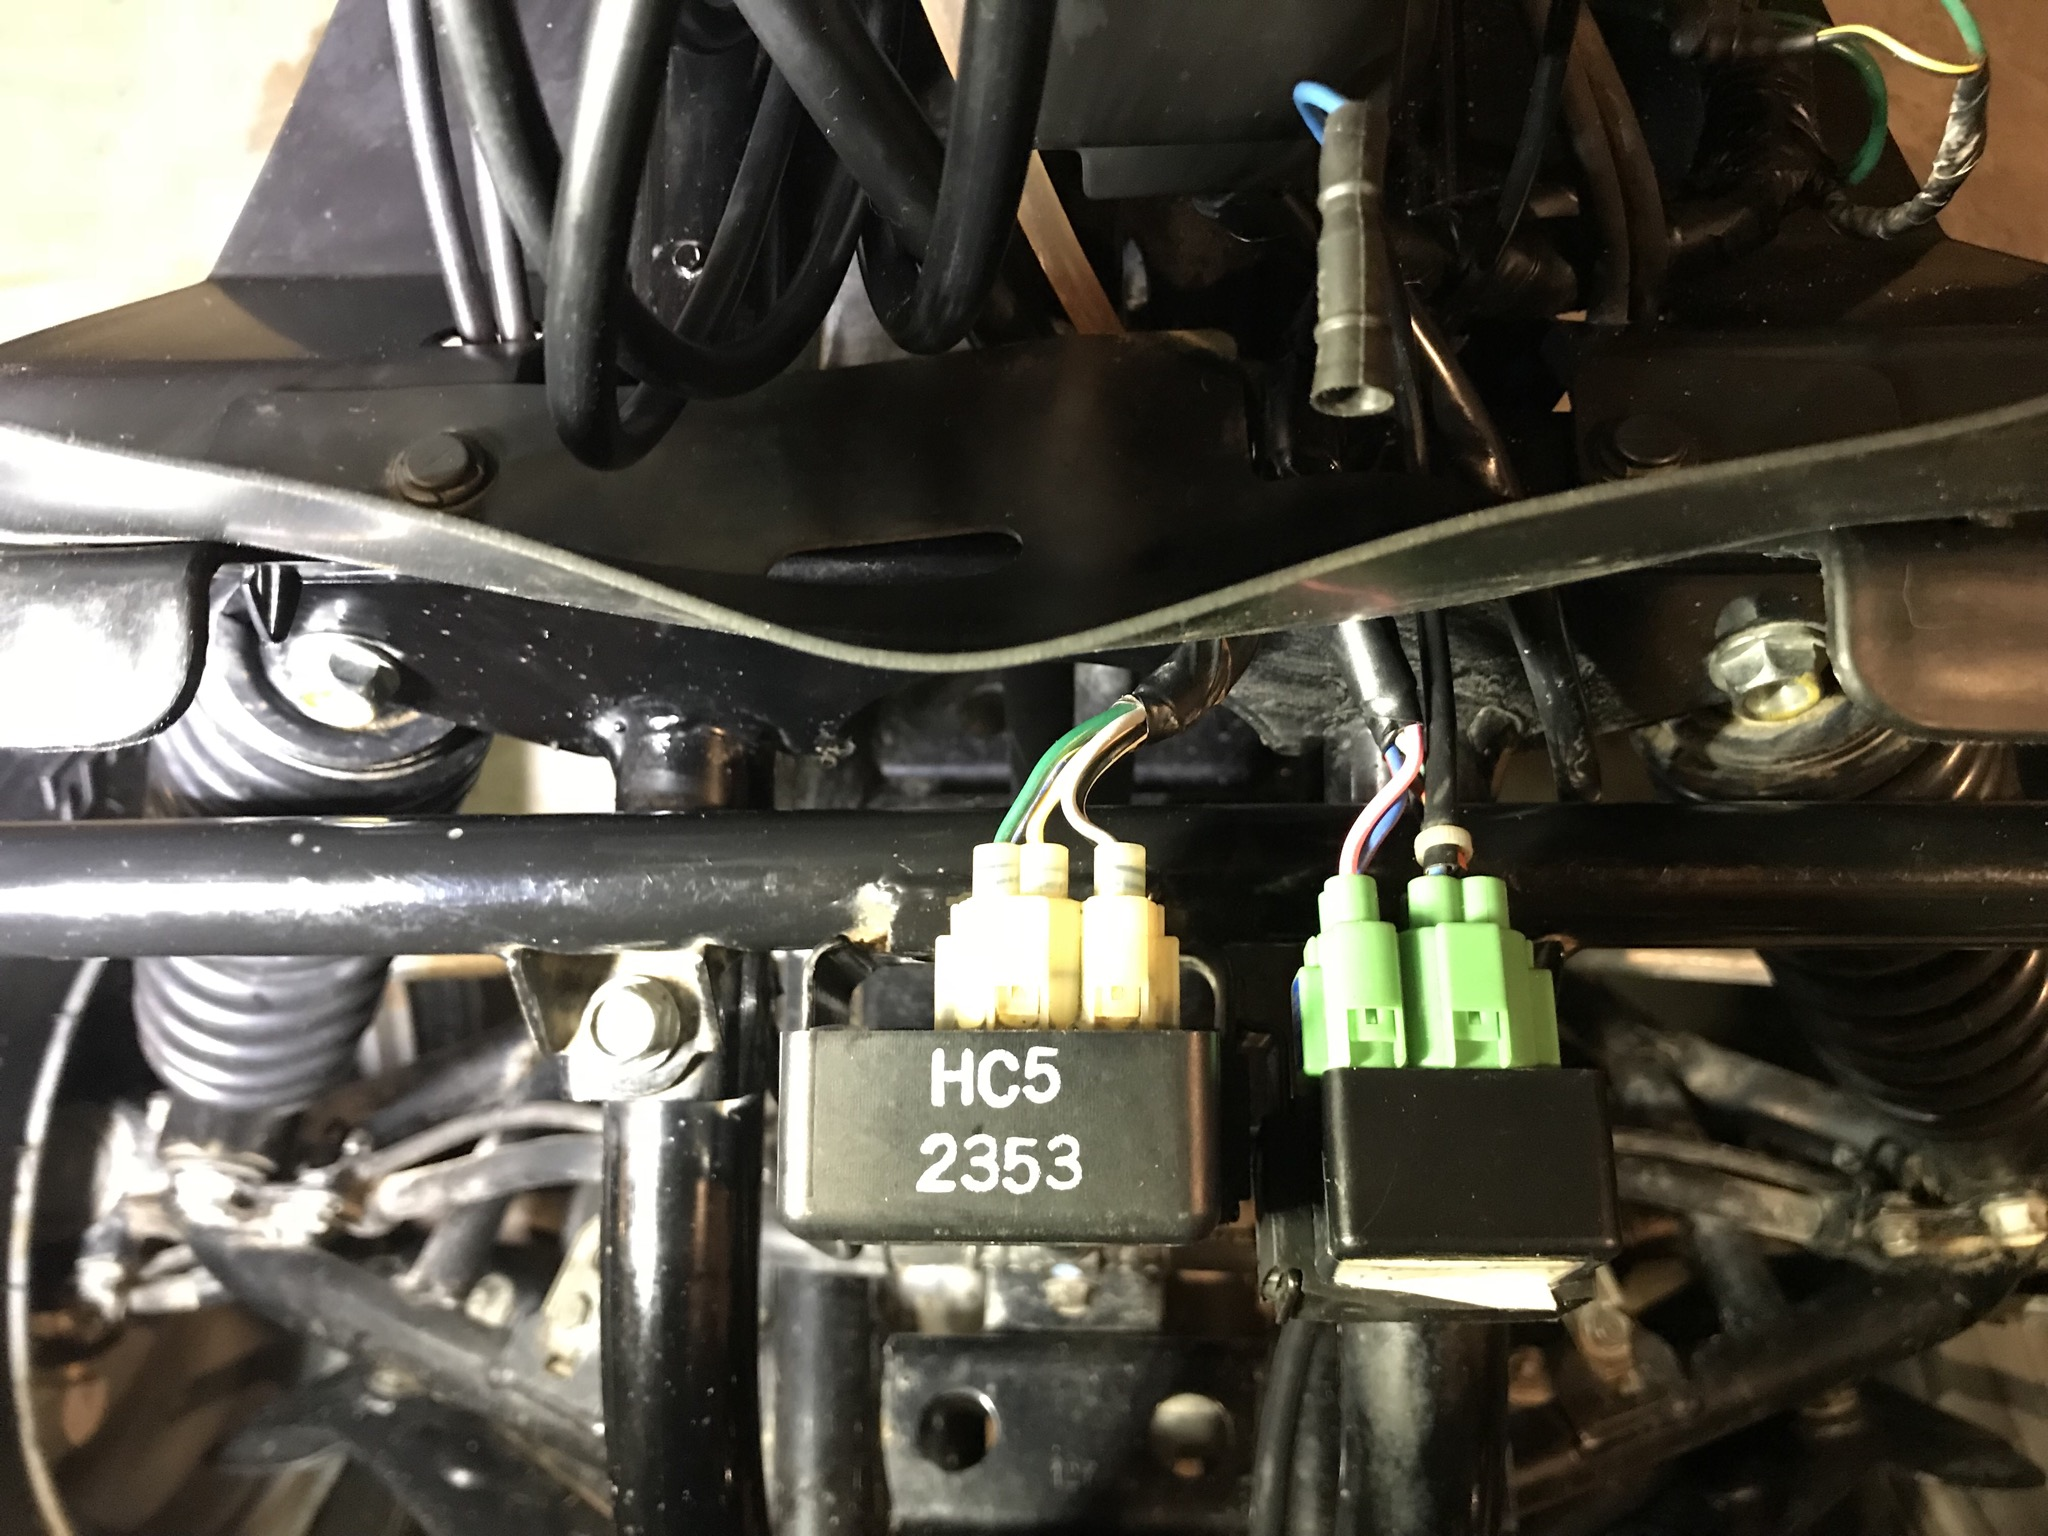 93 Trx300 Fan Control Honda Atv Forum Thread Mods Controller And Wirings Click Image For Larger Version Name F1dd711e F7d7 4bb4 80fb F2bc9b8d42e4